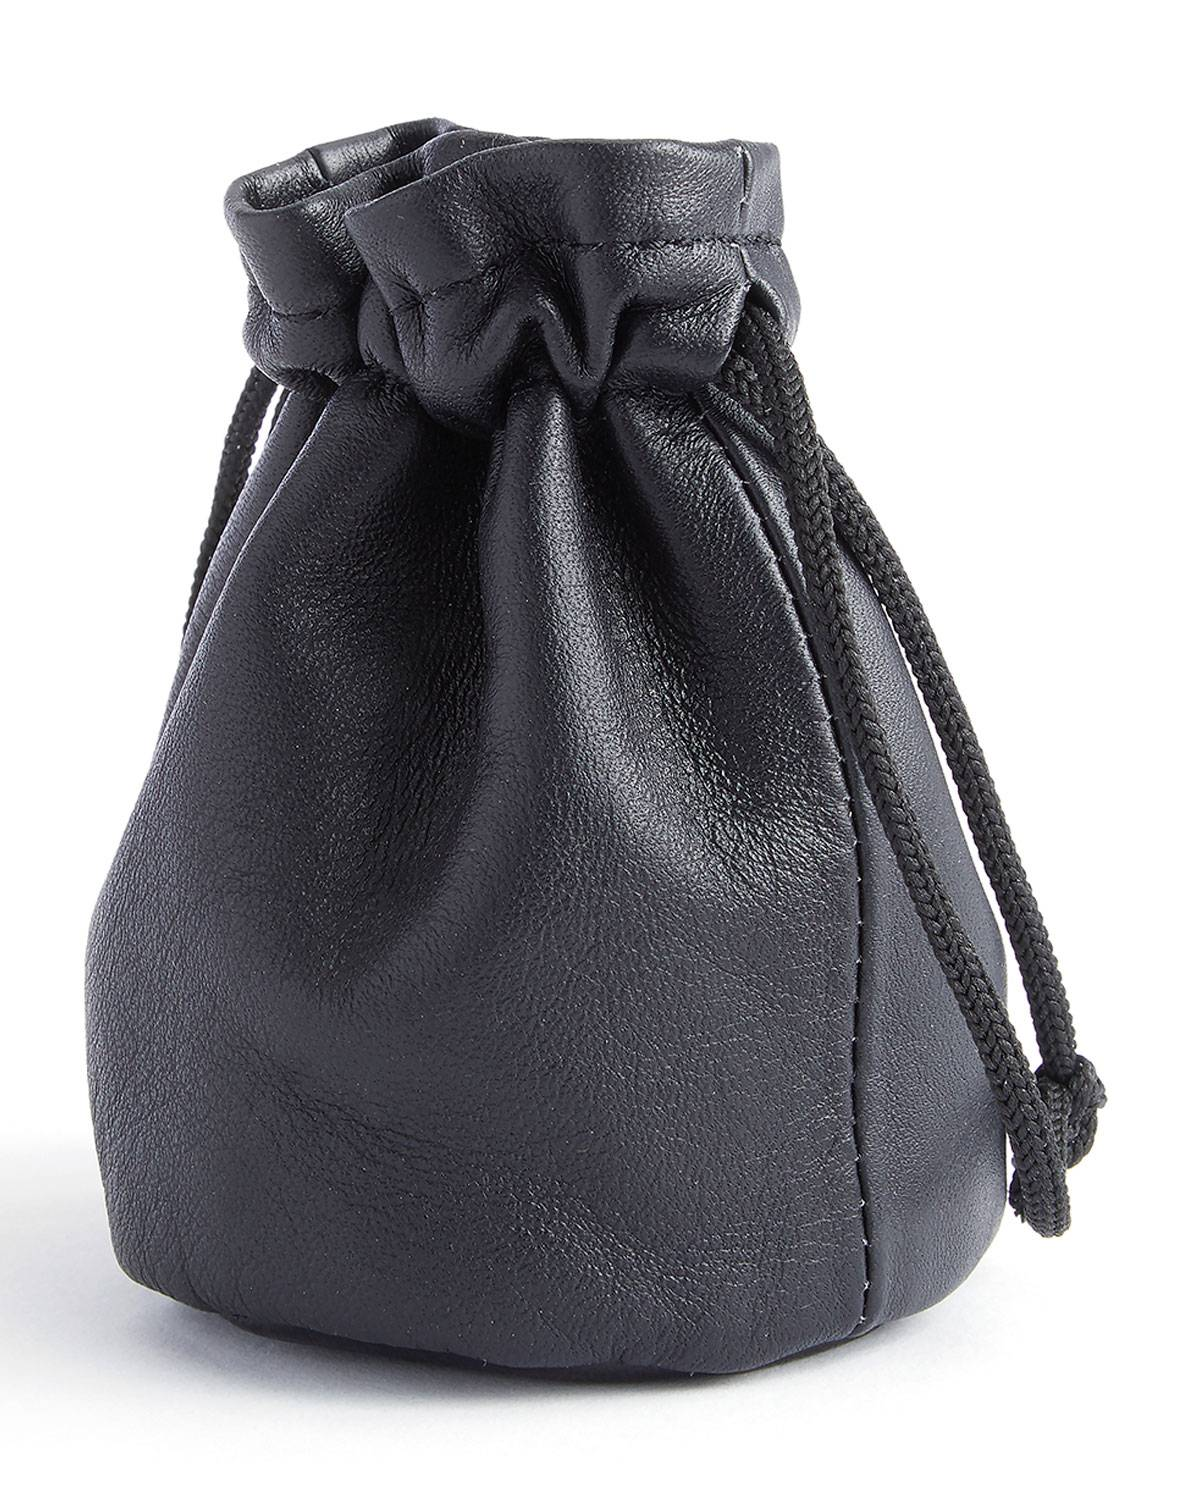 ROYCE New York Compact Drawstring Jewelry Pouch